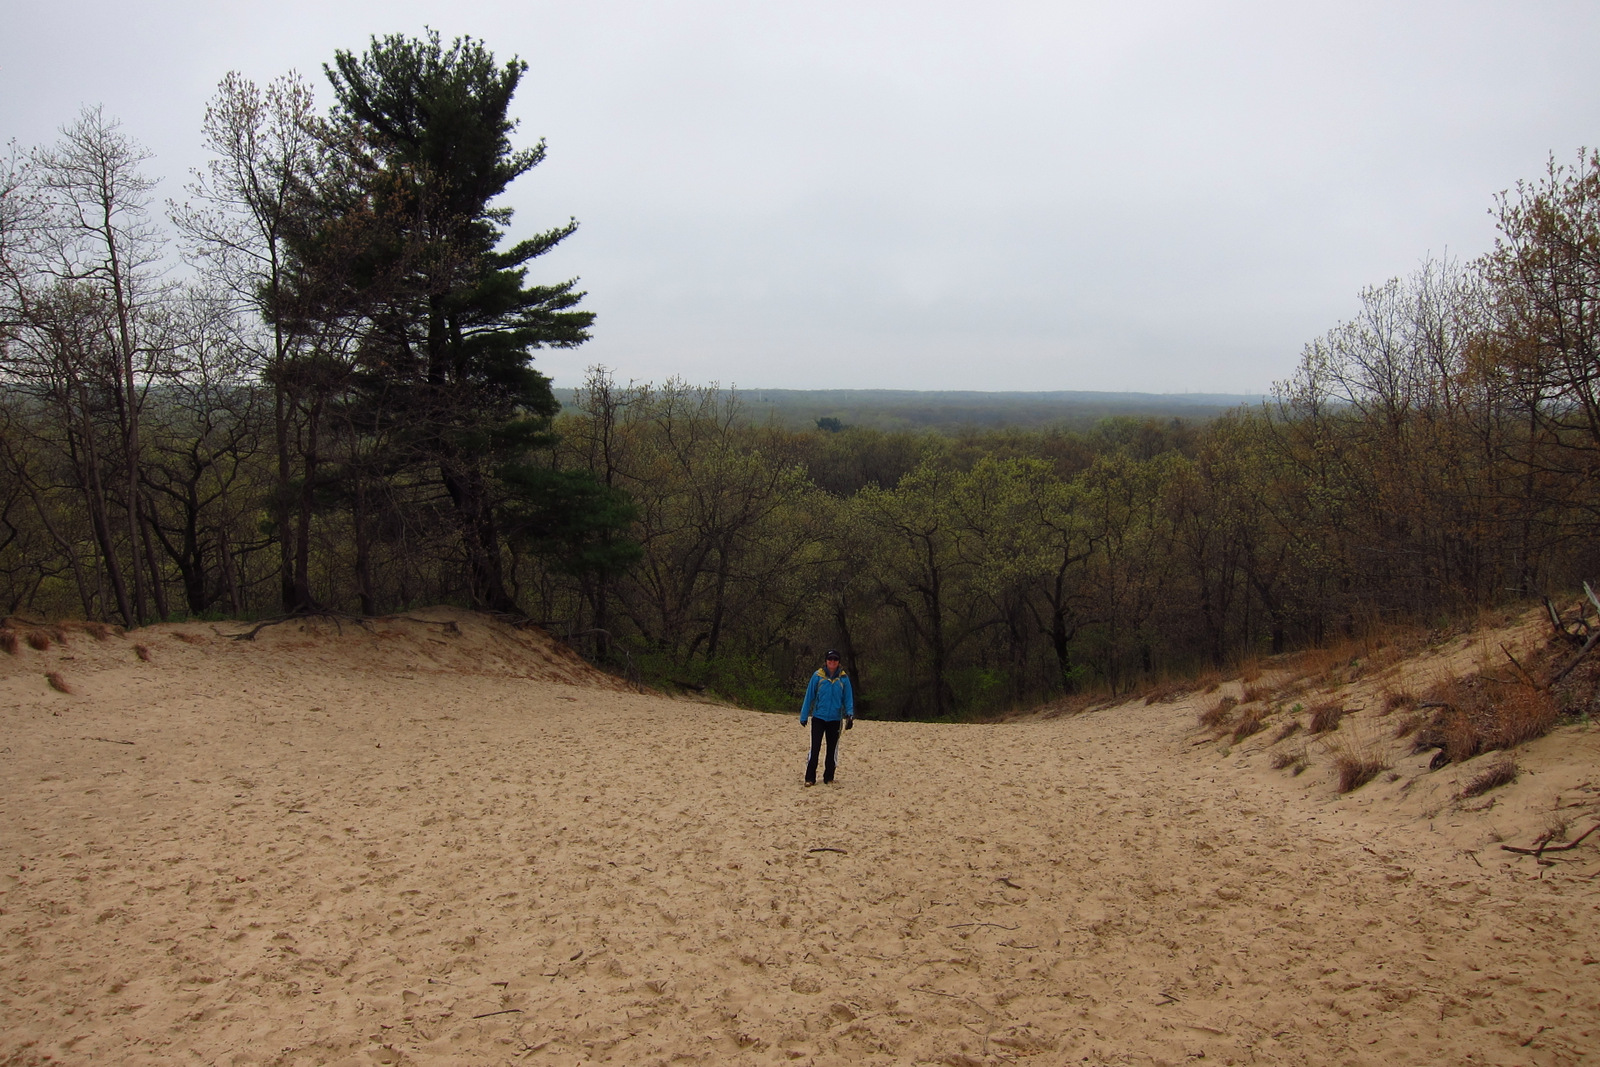 Climbing the dunes - there was a hiking challenge, so we had to do it